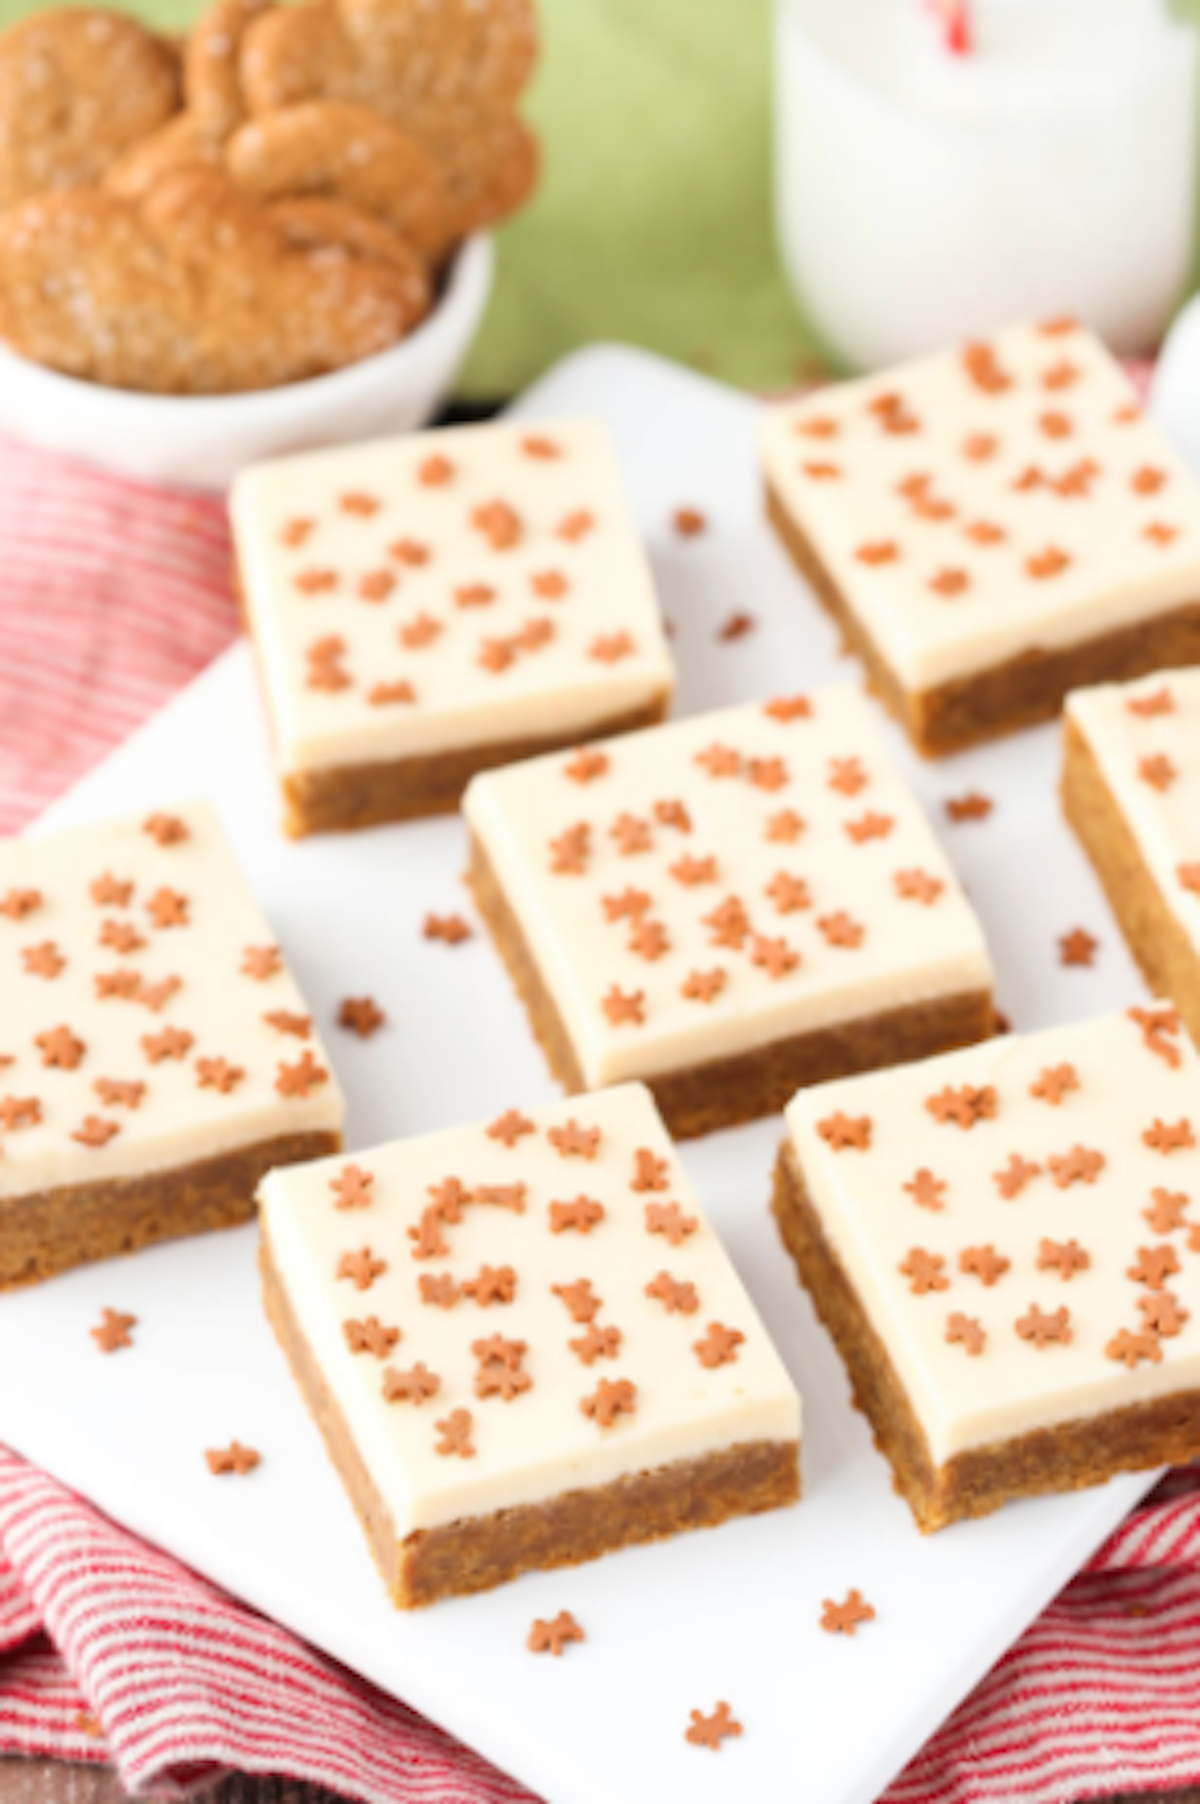 This week on Melissa's Menu is caramel-gingerbread cookie bars with caramel frosting. (Photo courtesy of Delish.com)